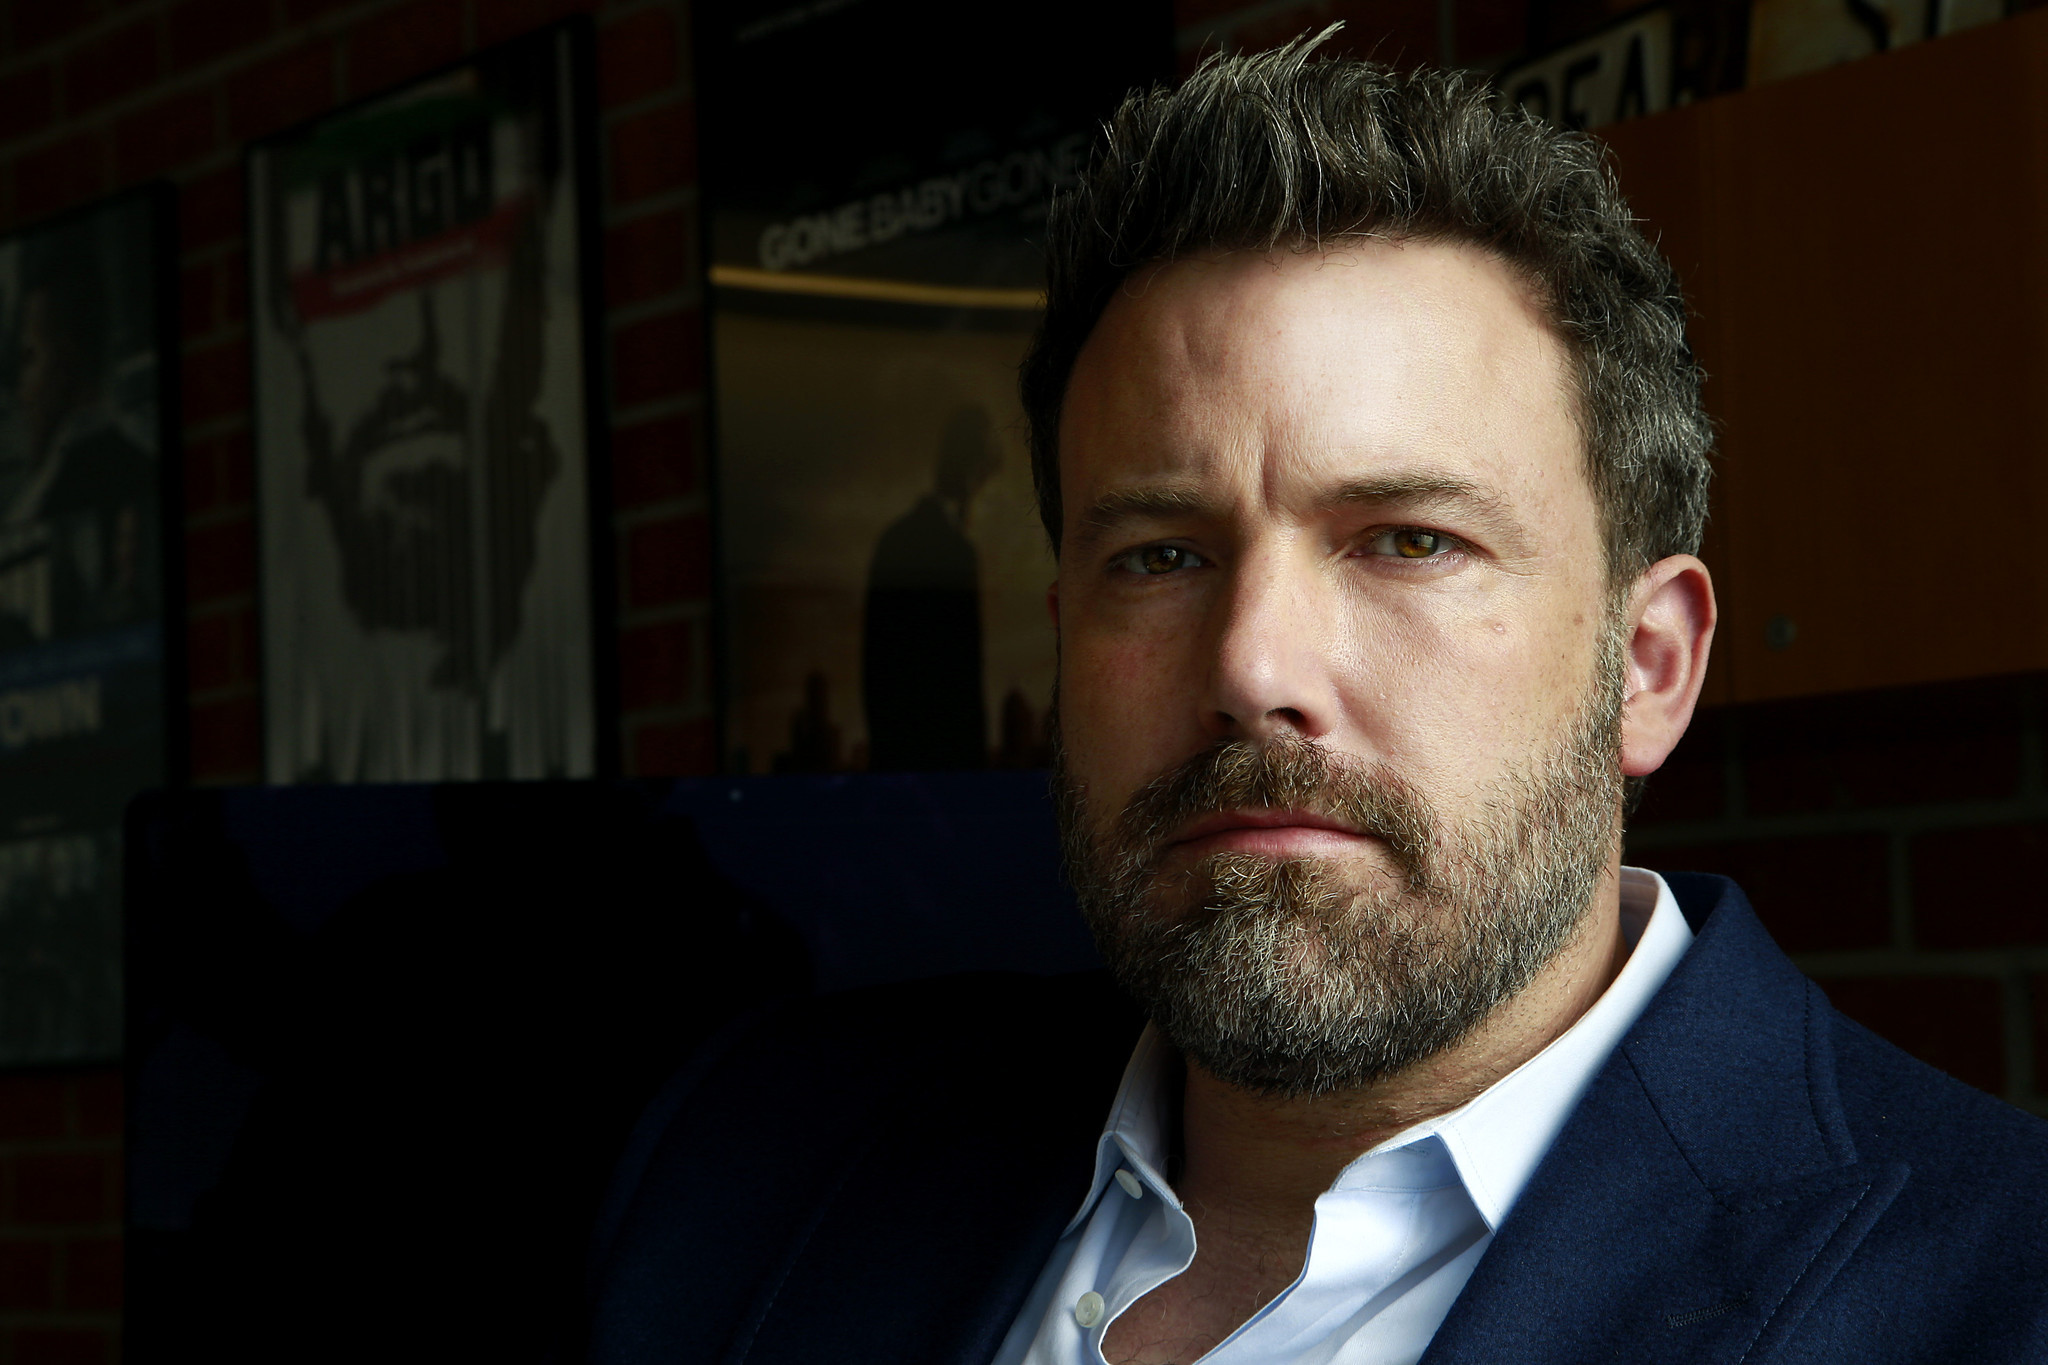 Ben Affleck revealed on Tuesday that he had undergone rehab for alcohol abuse. (Kirk McKoy / Los Angeles Times)